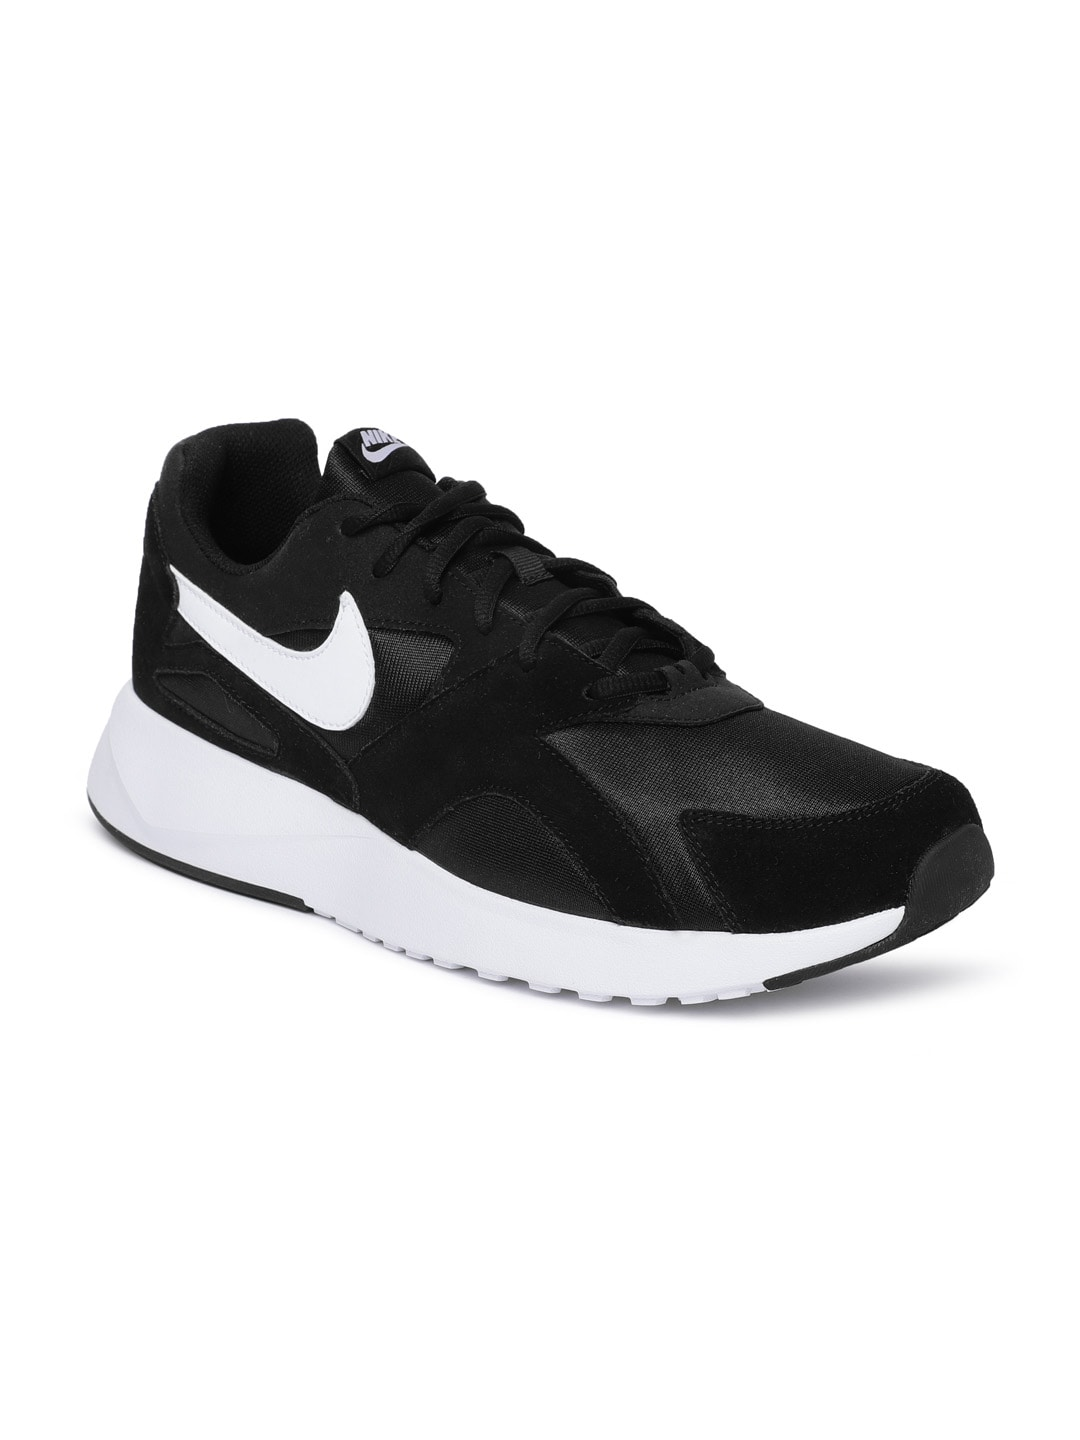 d3e2da03505 Nike Puma Shoes - Buy Nike Puma Shoes online in India